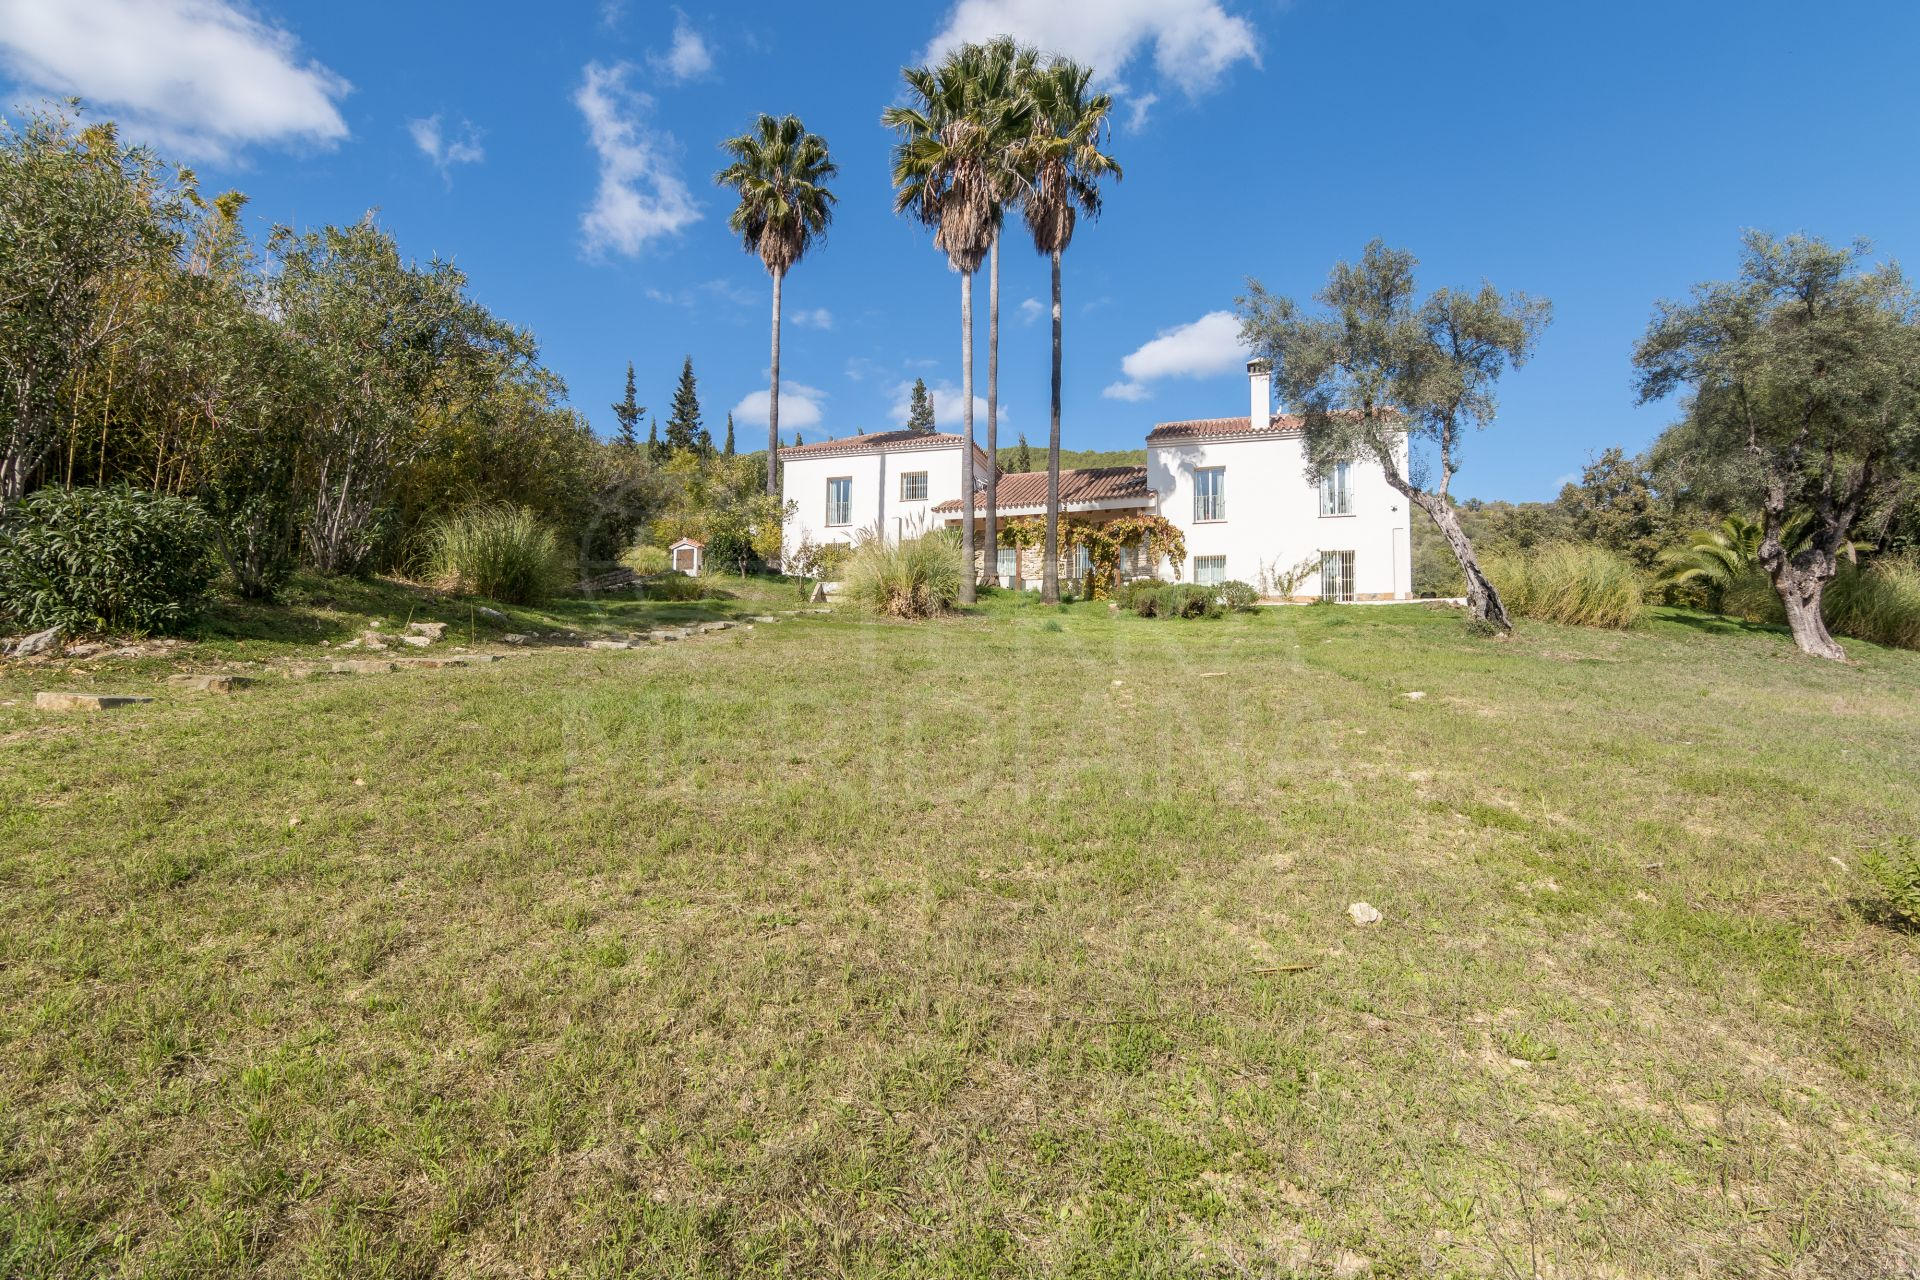 Unique Opportunity to purchase a charming villa set within 3 acres of private mature gardens in Gaucin, Andalucia